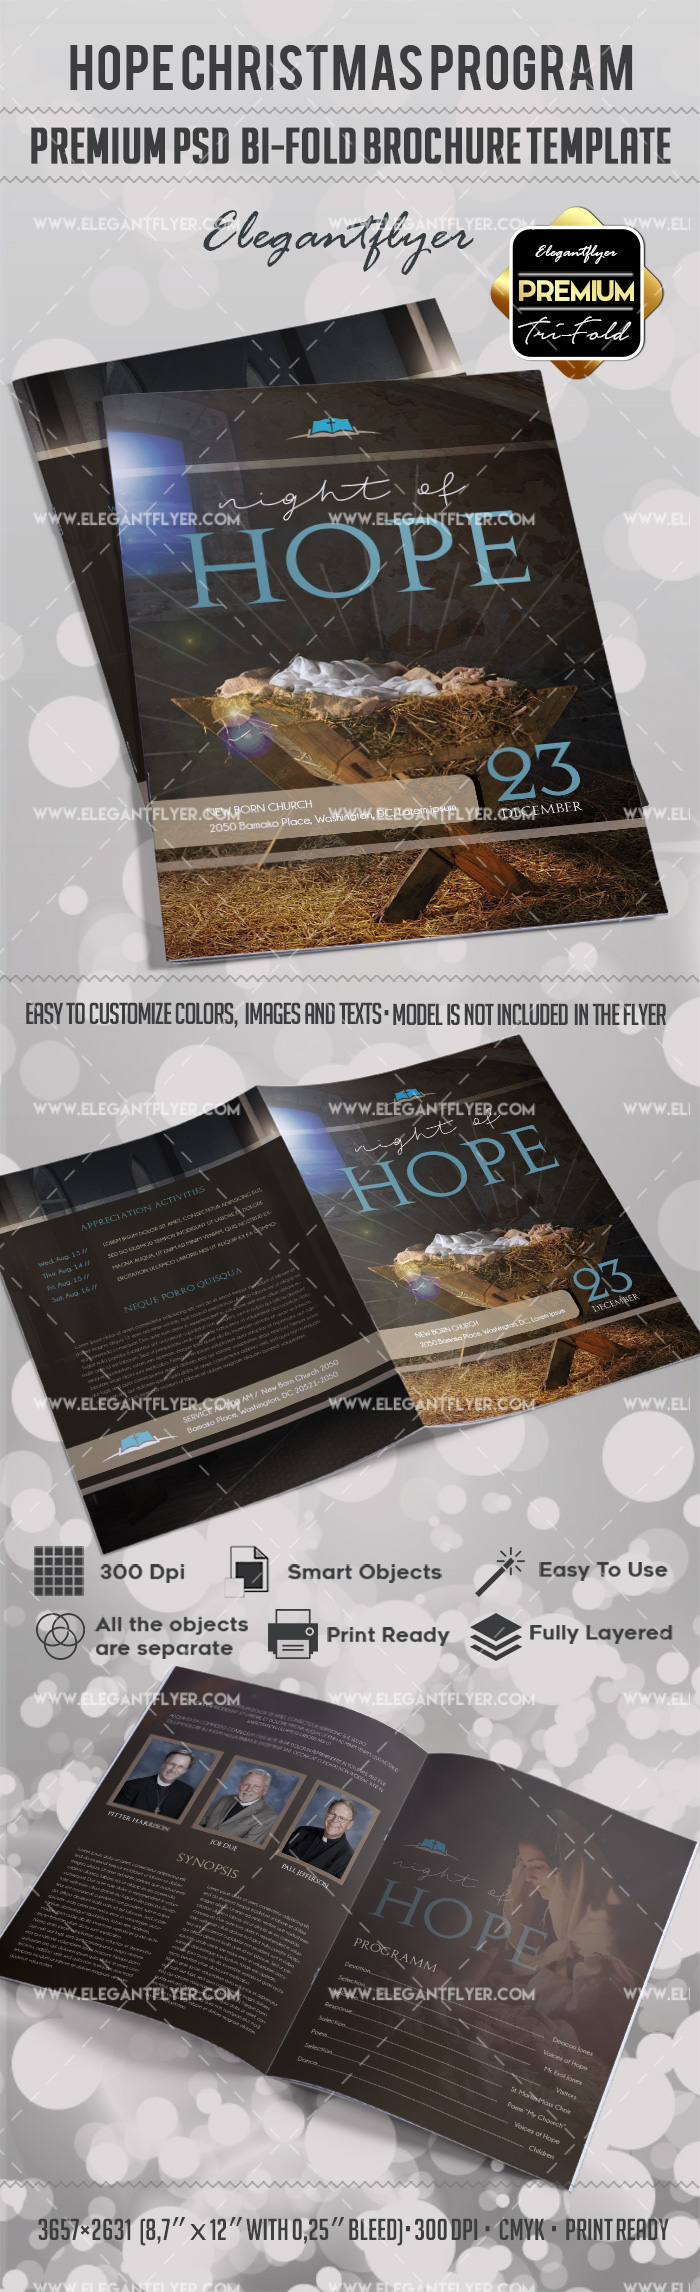 two fold brochure template psd - hristmas hope program template by elegantflyer